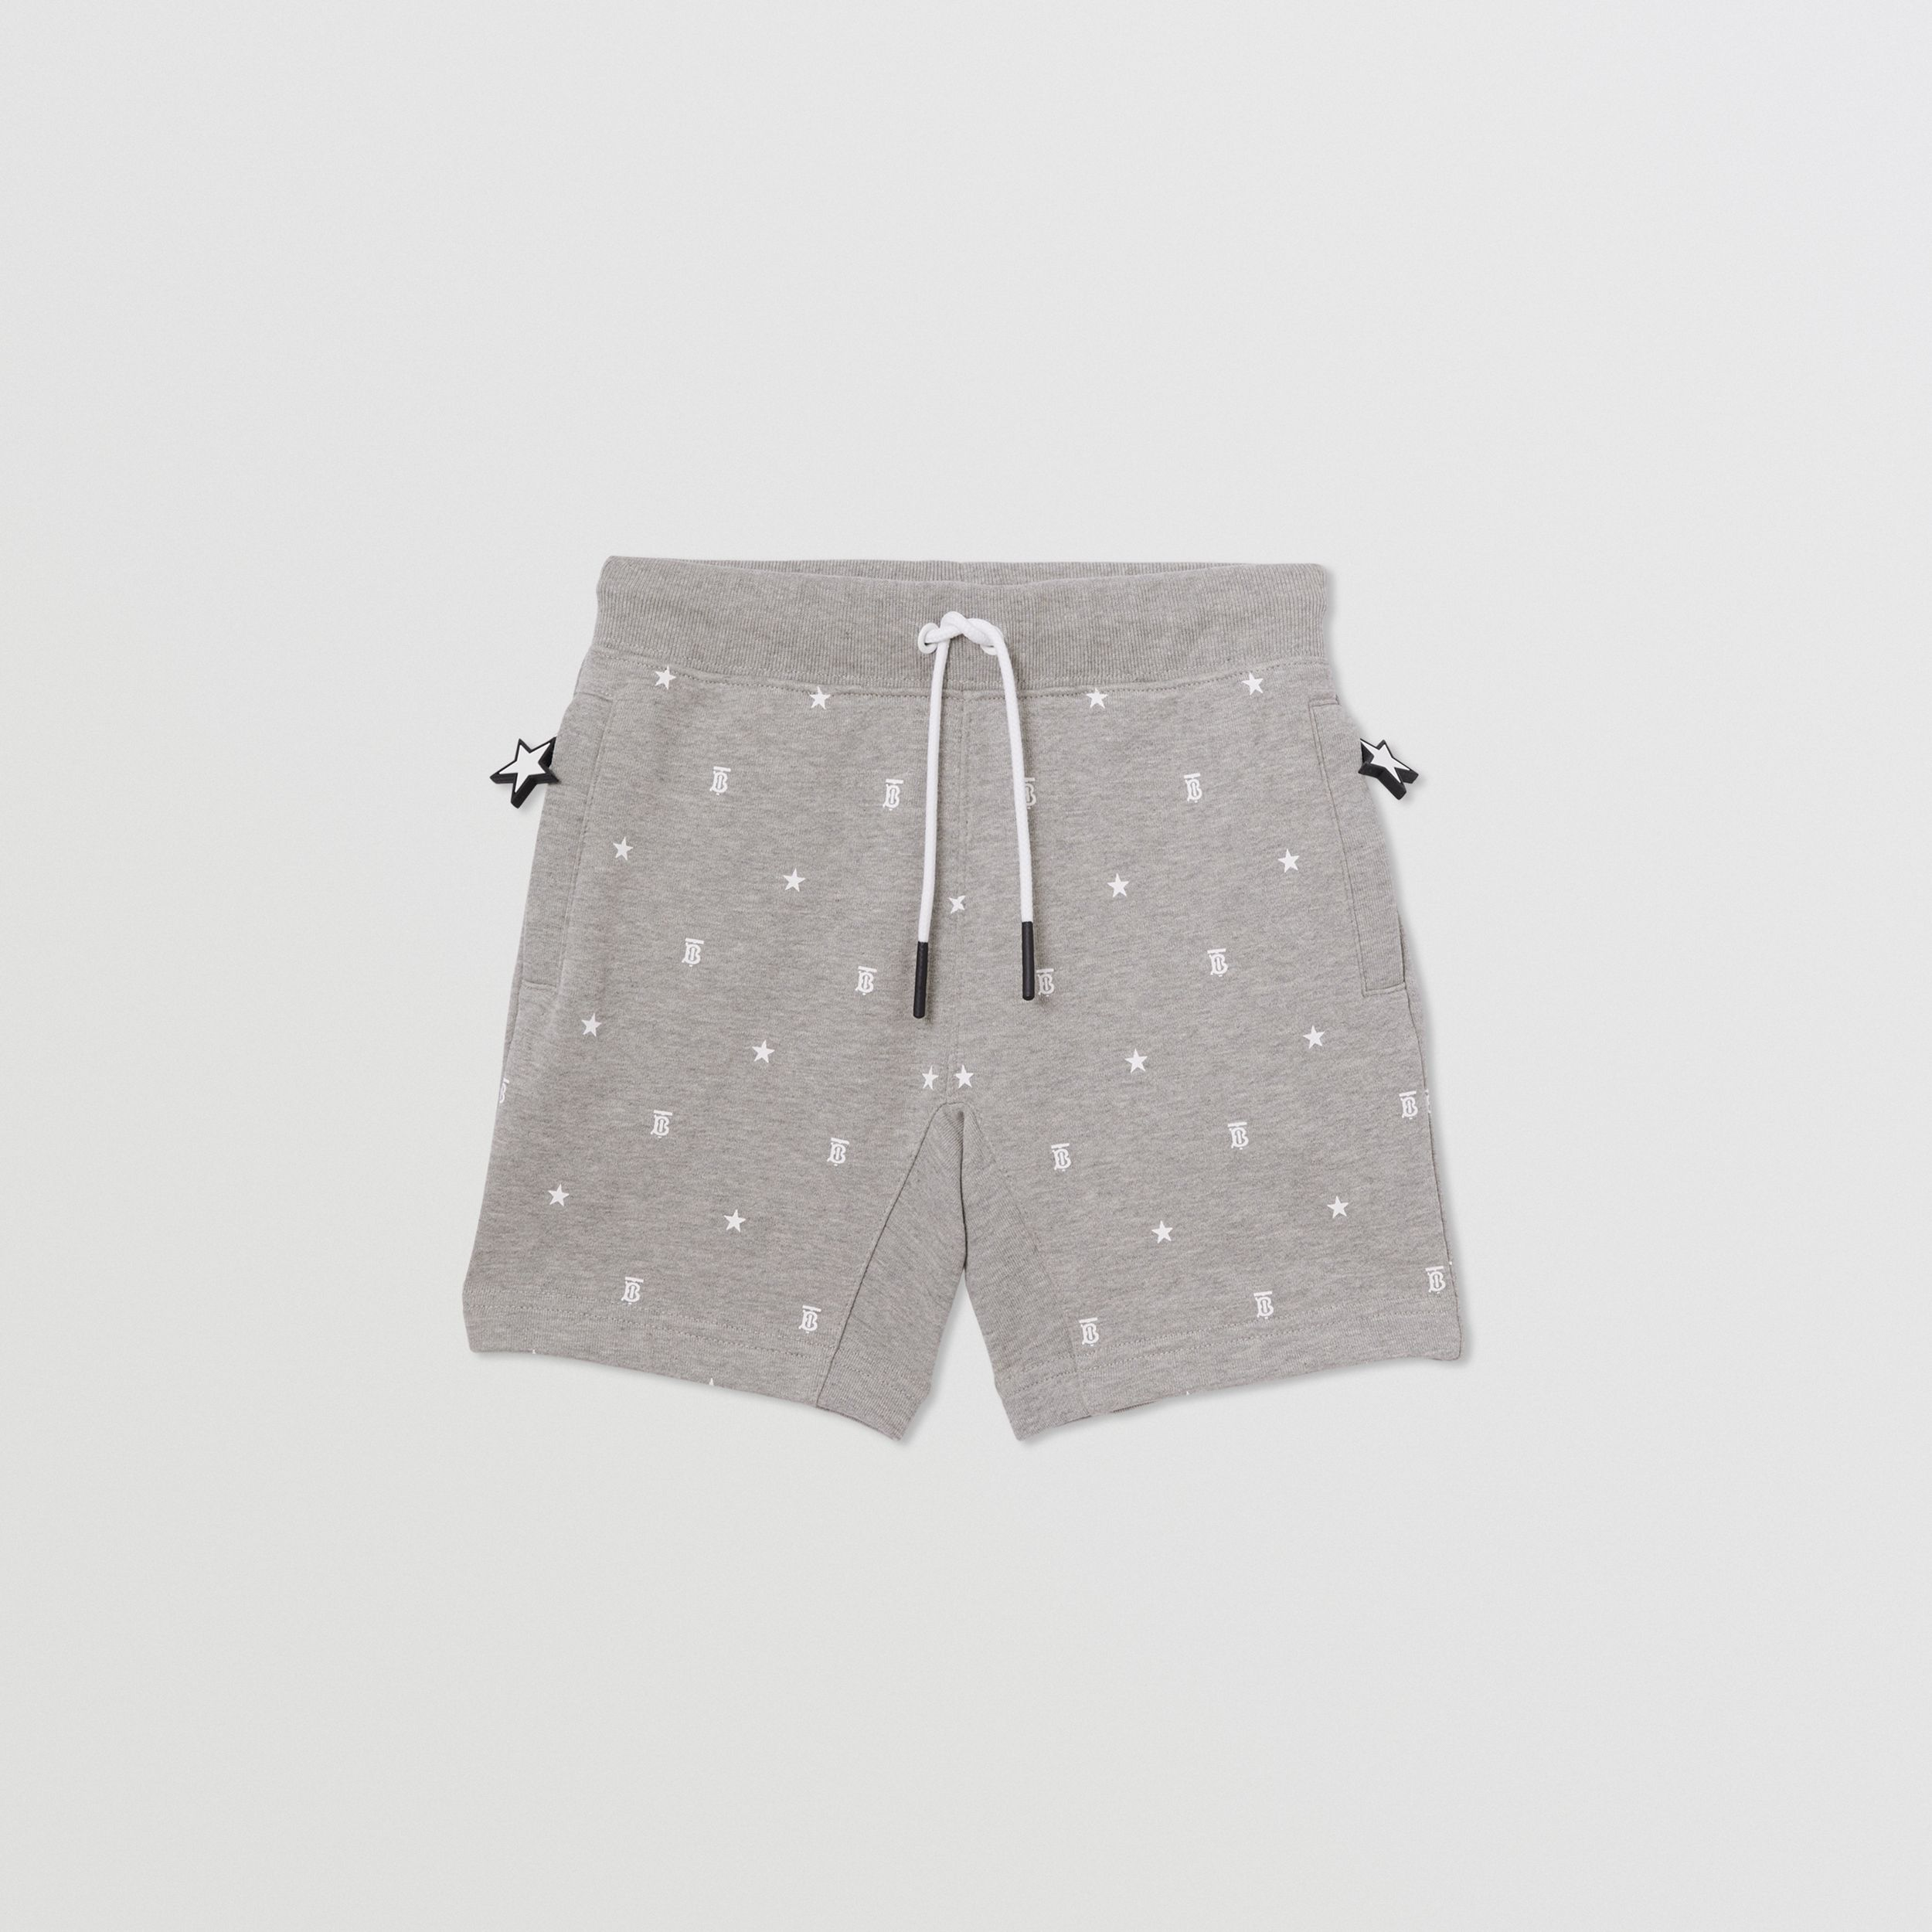 Star and Monogram Print Cotton Drawcord Shorts in Grey | Burberry - 1